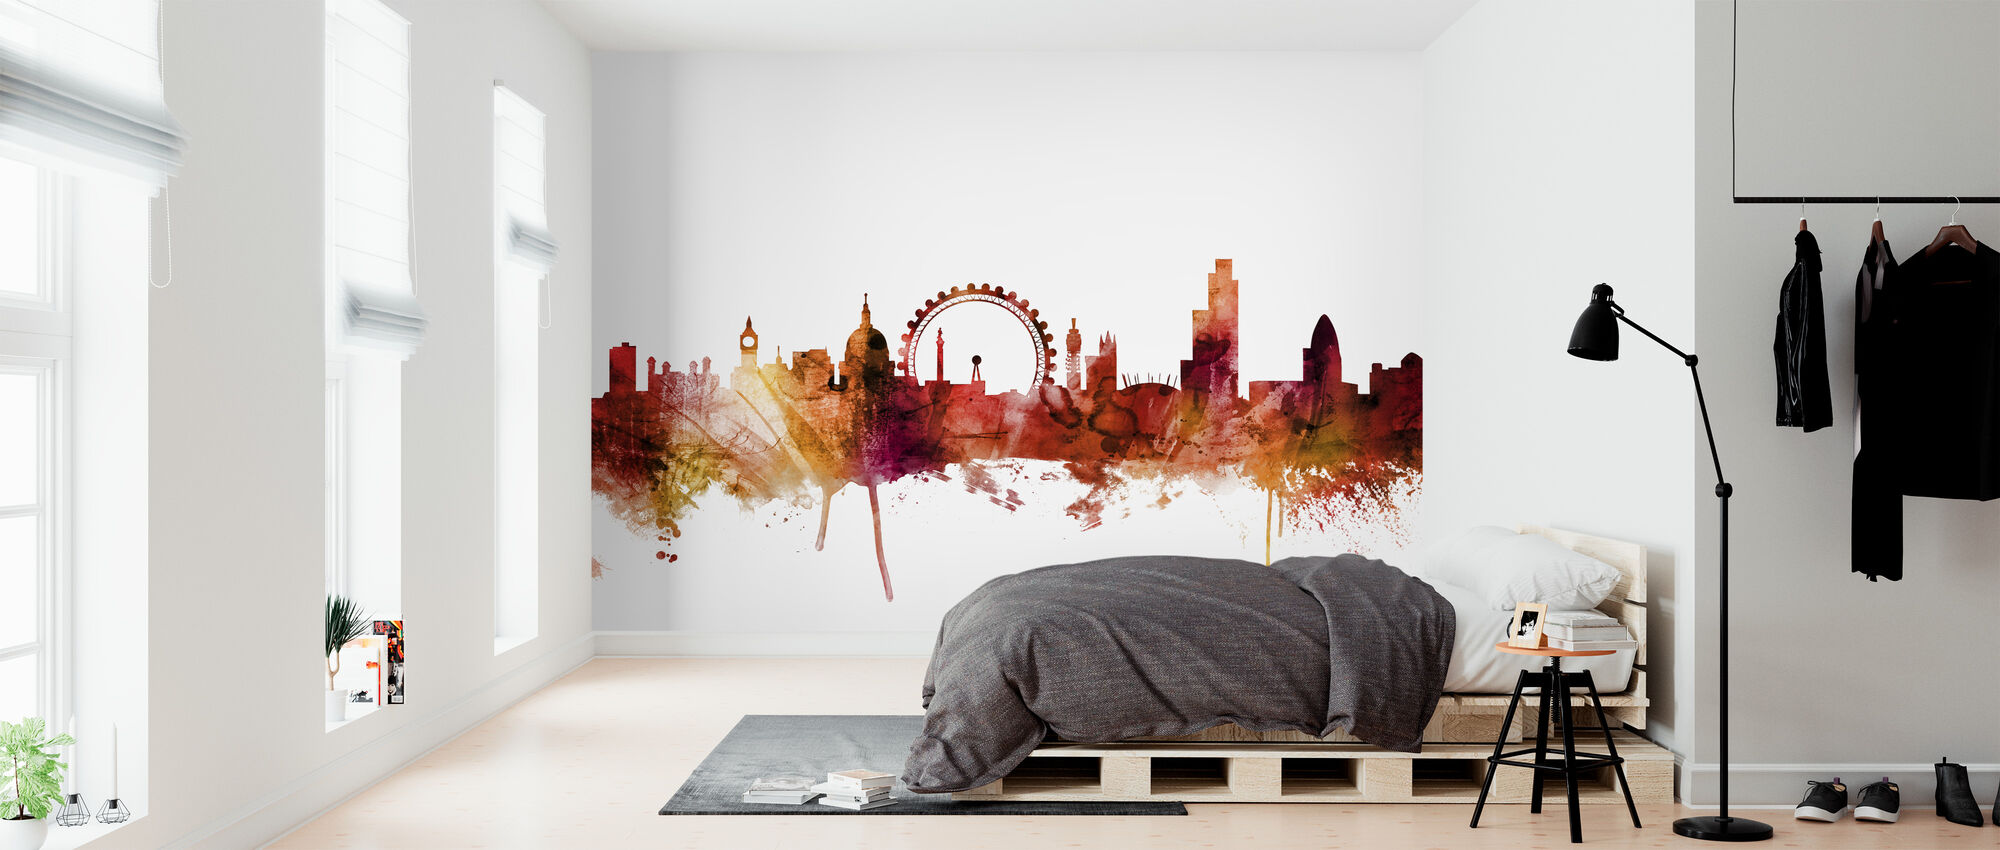 London England Skyline - Behang - Slaapkamer